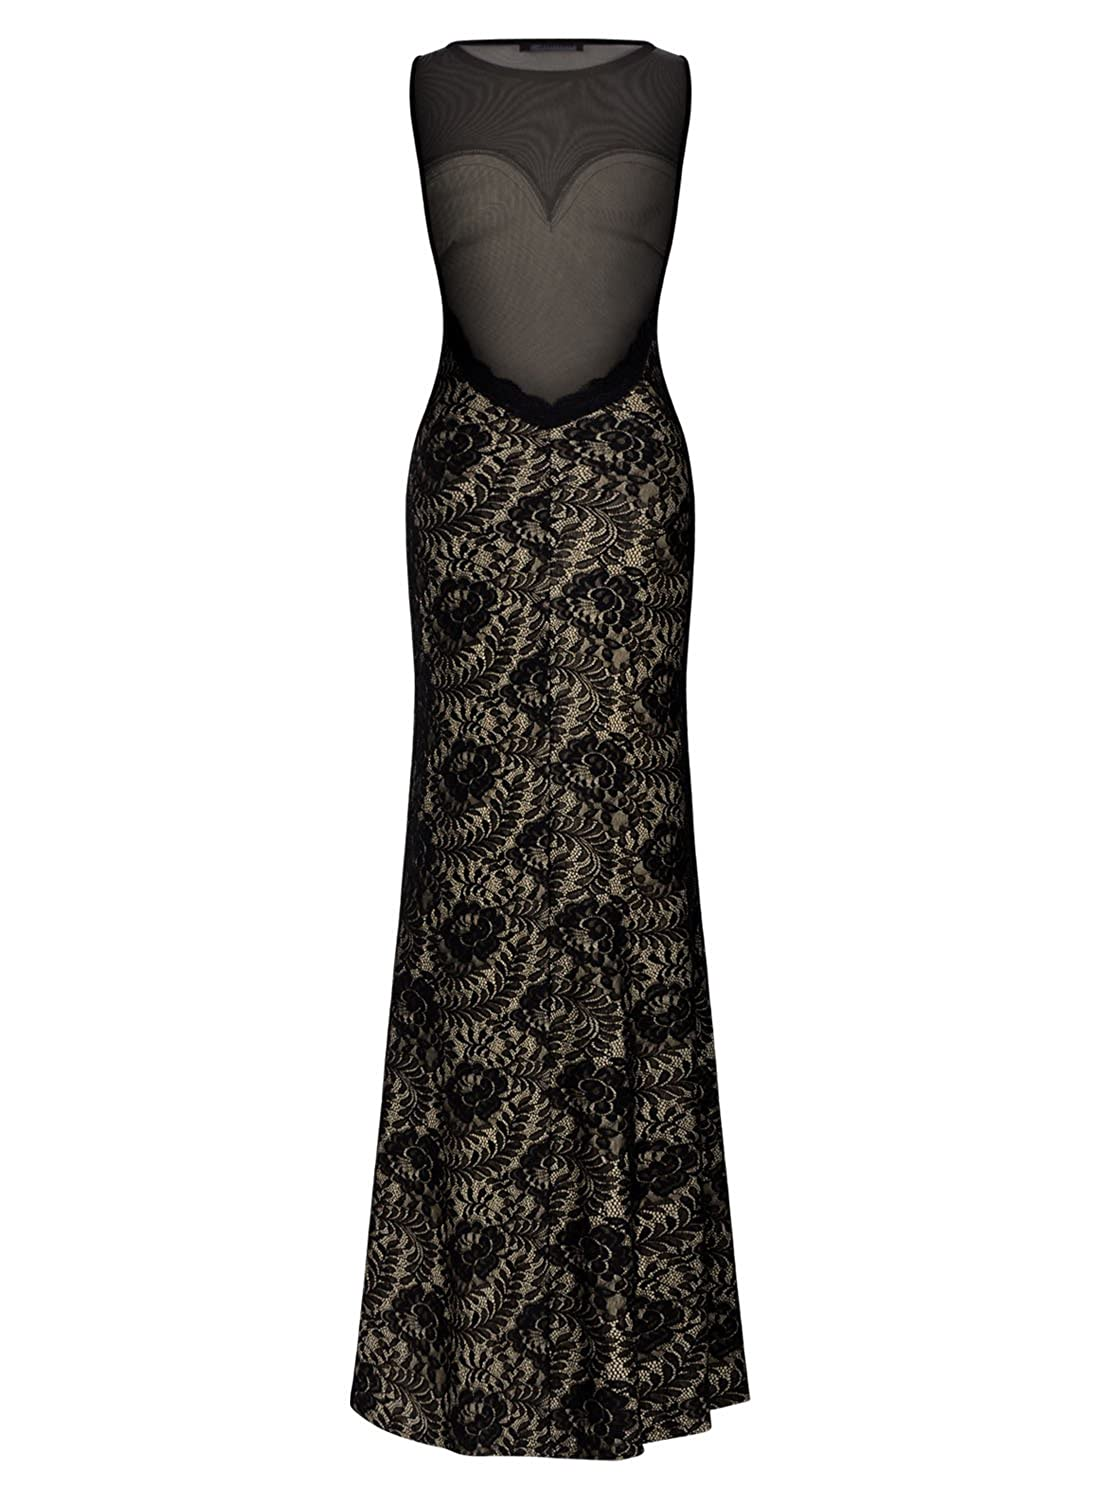 Amazon.com: Missmay Womens Sexy Lace Mesh Split Side Long Prom Bridesmaid Party Bodycon Dress M Black: Clothing